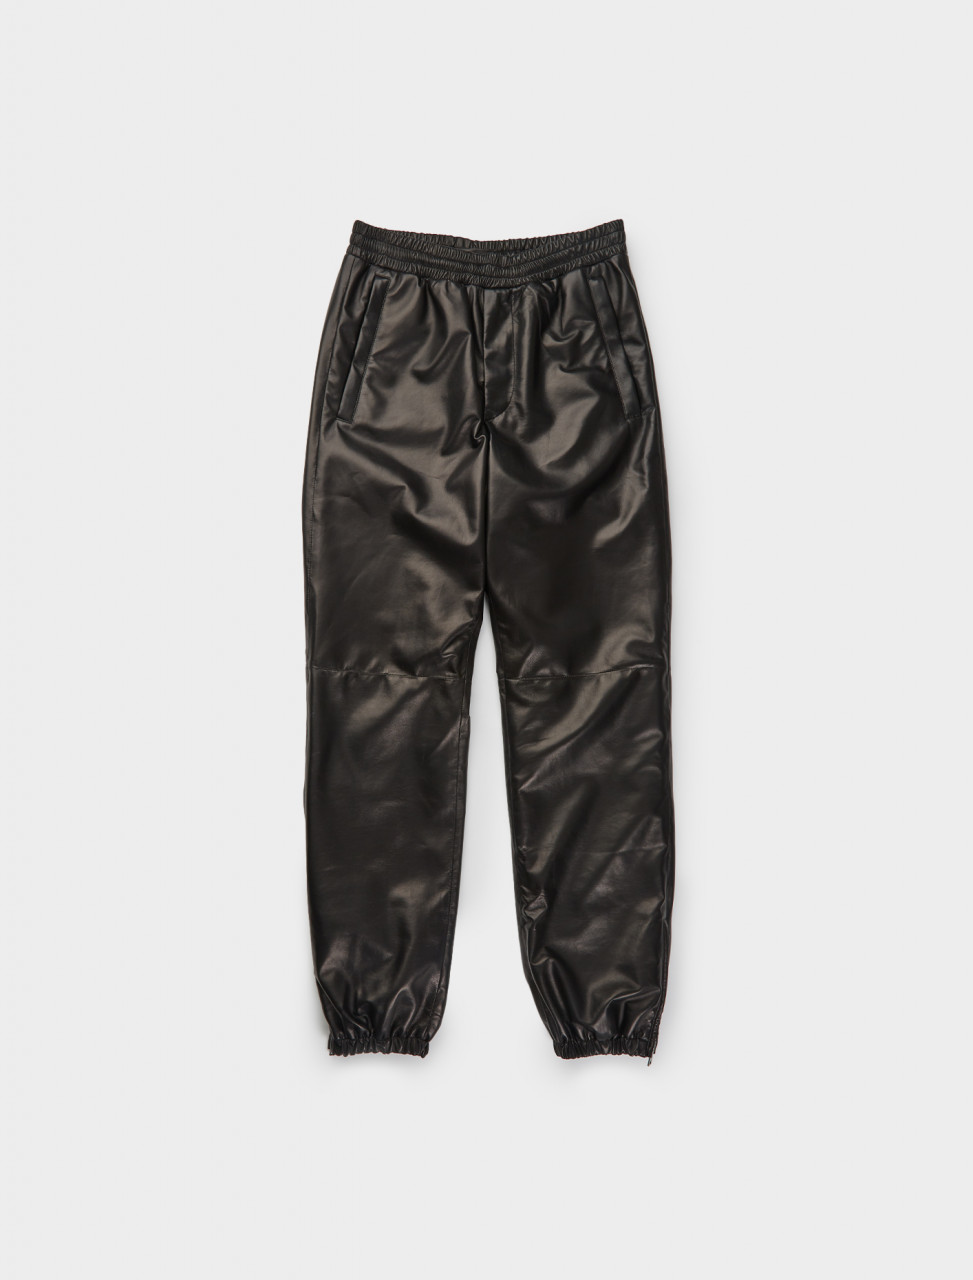 242-UPP212-JHI-F0002 Prada Nappa Leather Jogger in Black